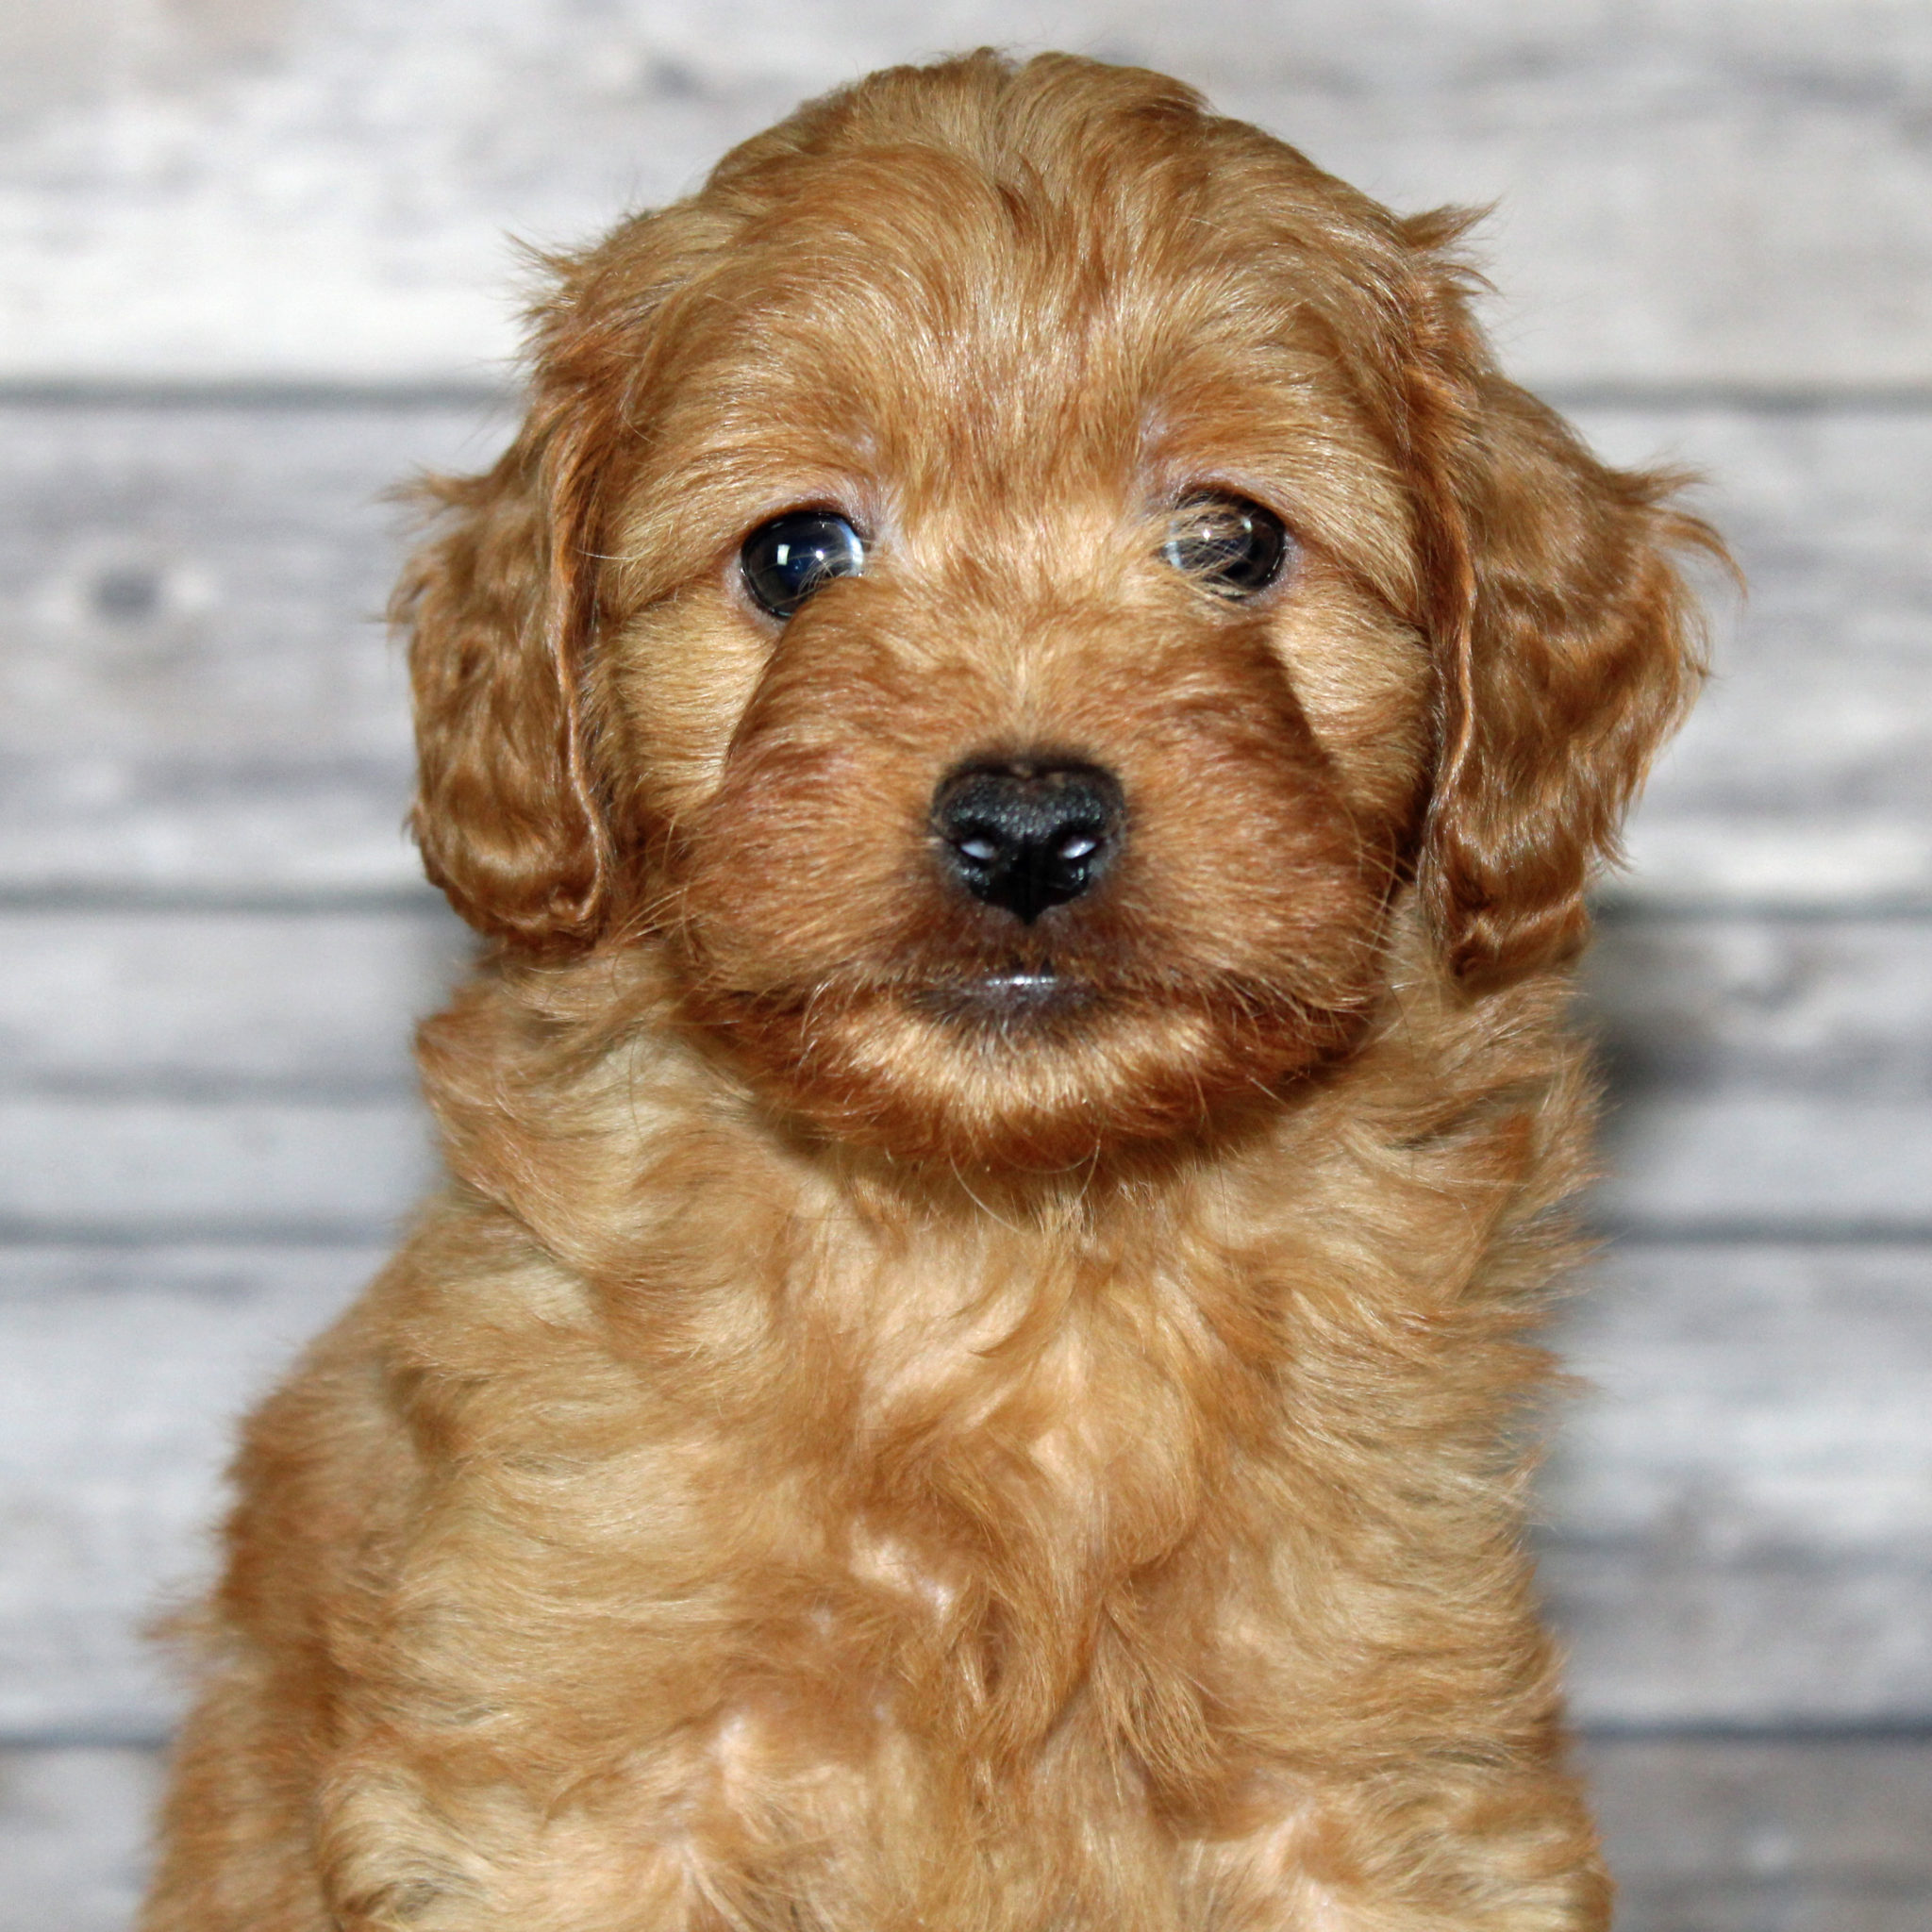 A picture of our litter of Petite Irish Goldendoodles raised in Iowa